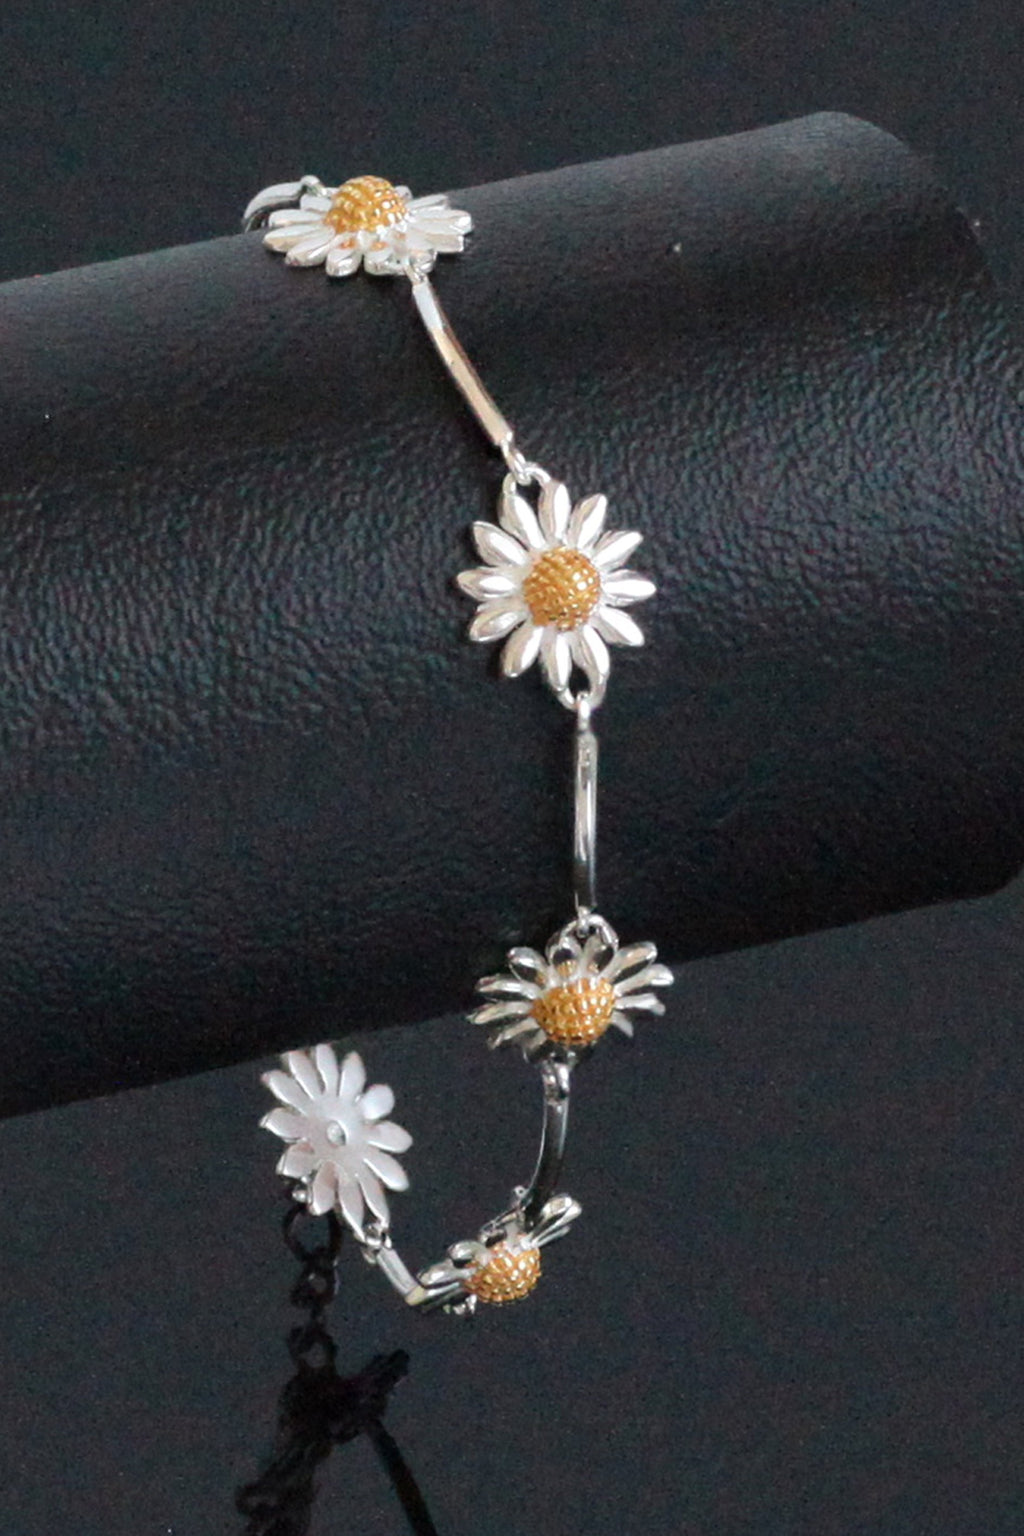 Polished Daisy Chain Silver Bracelet